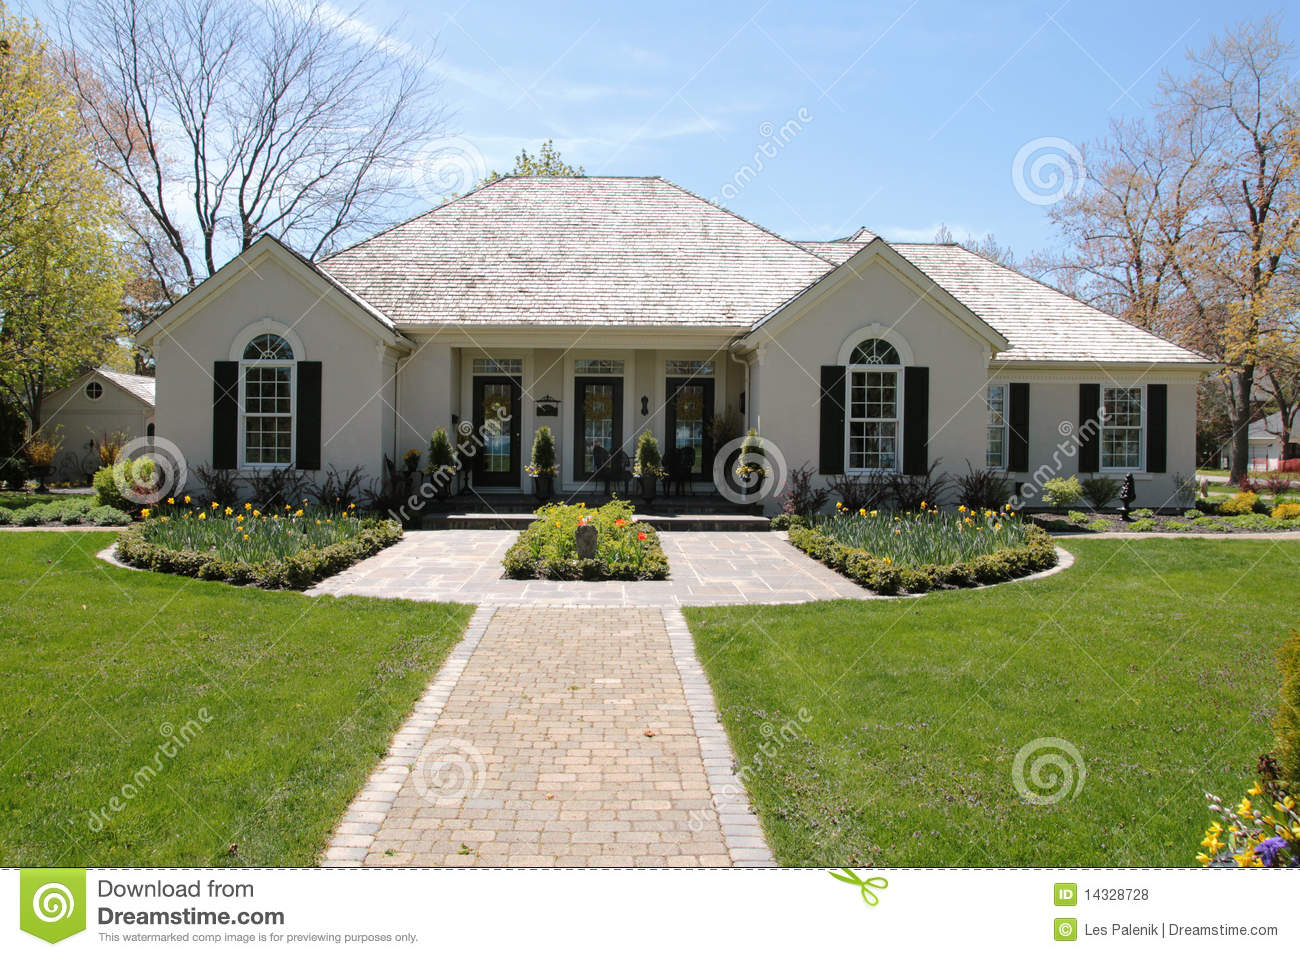 Nice house with symmetrical landscaping stock photo for Nice house photo